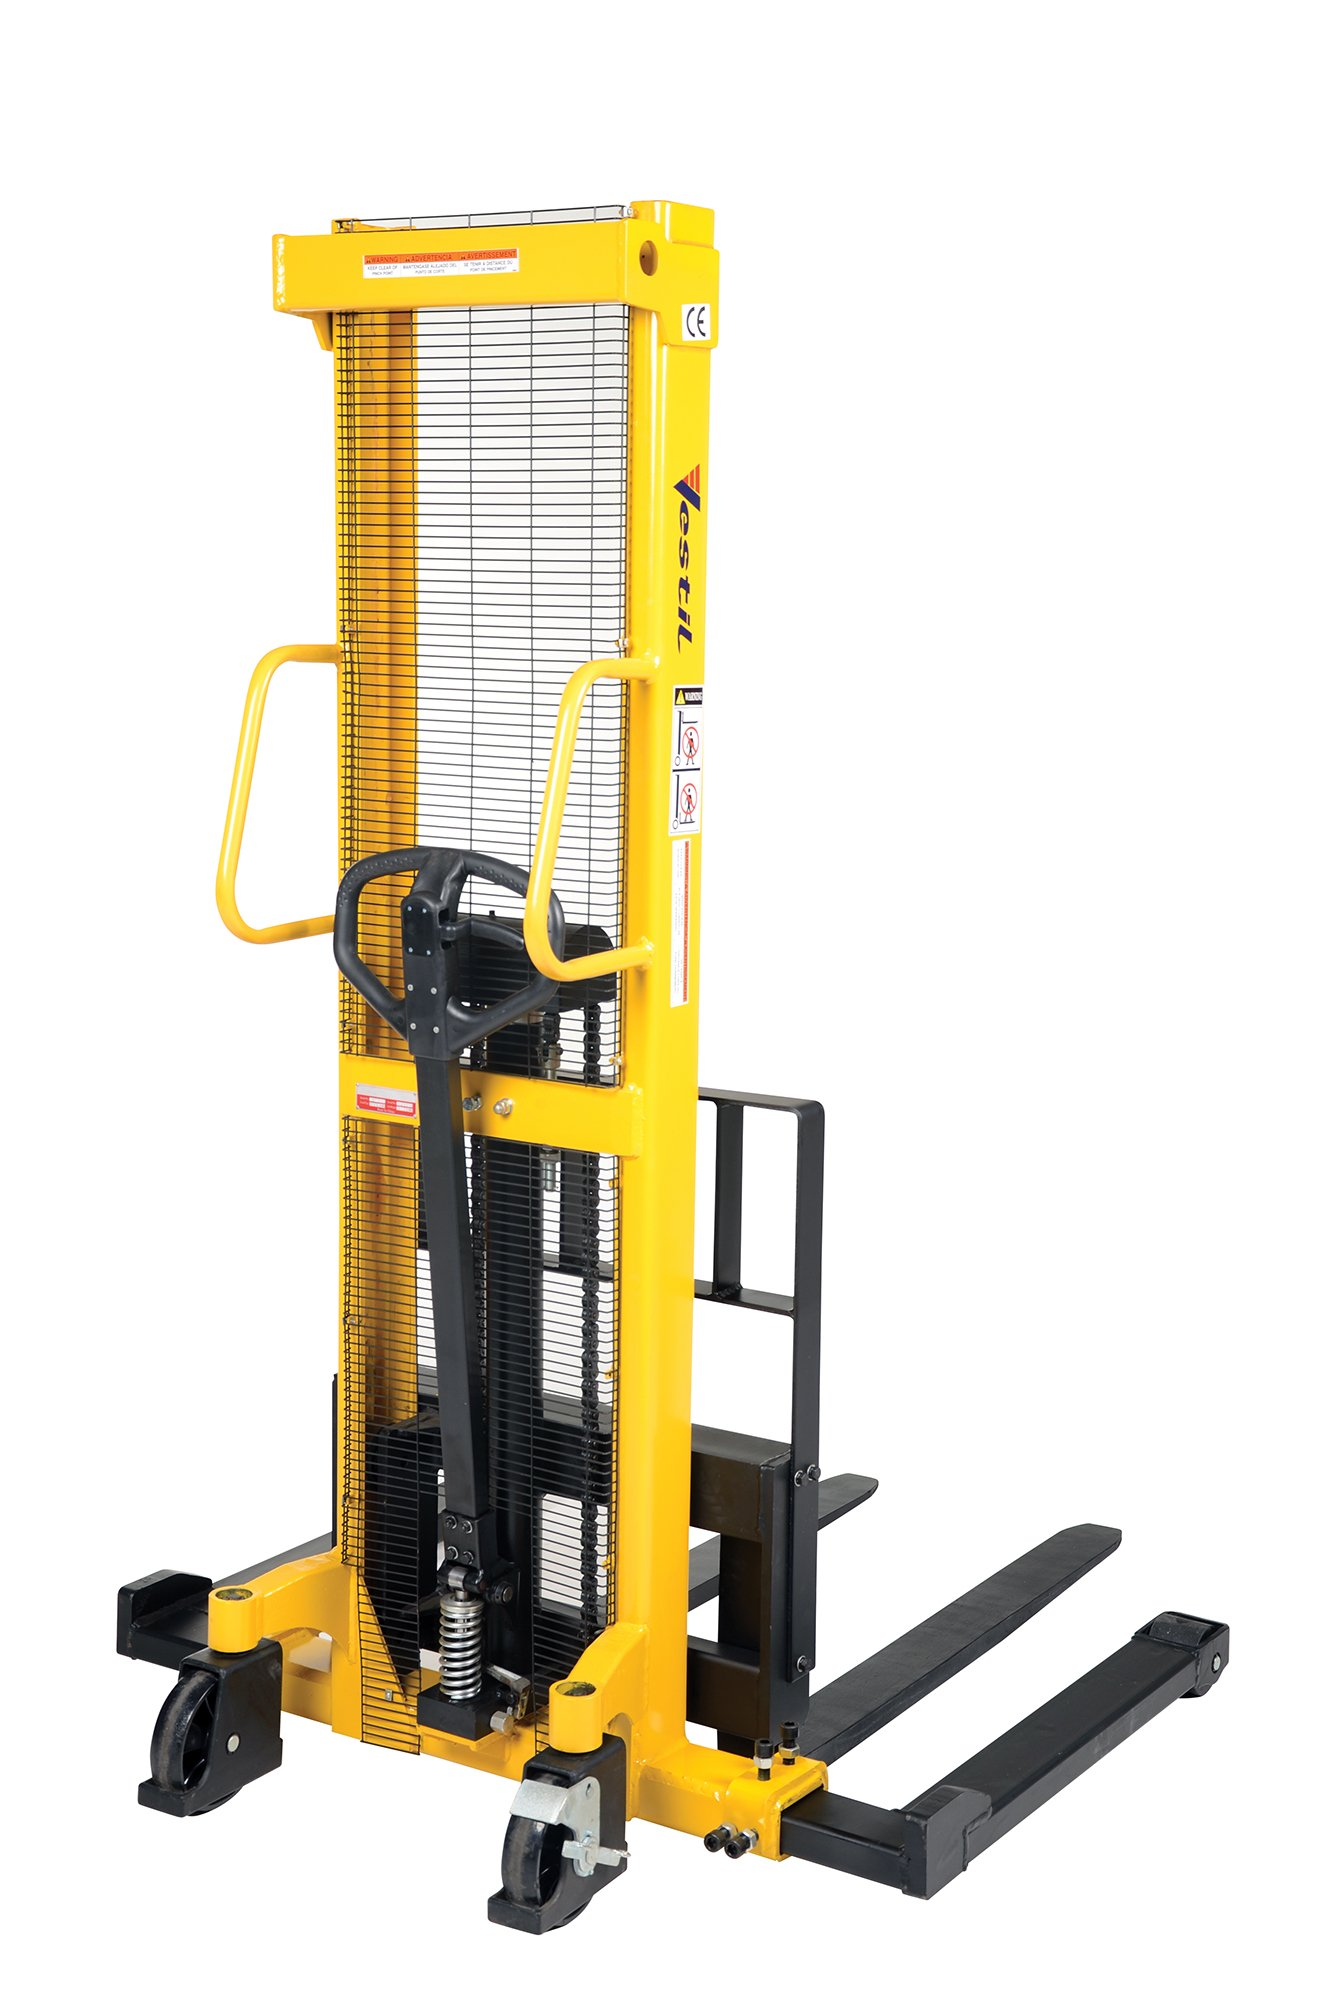 Vestil VHPS-2000-AA Manual Hydraulic Hand Pump Steel Stacker with Adjustable Forks, 2000 lb. Capacity, 60-1/4'' Length x 52'' Width x 81'' Height, Yellow